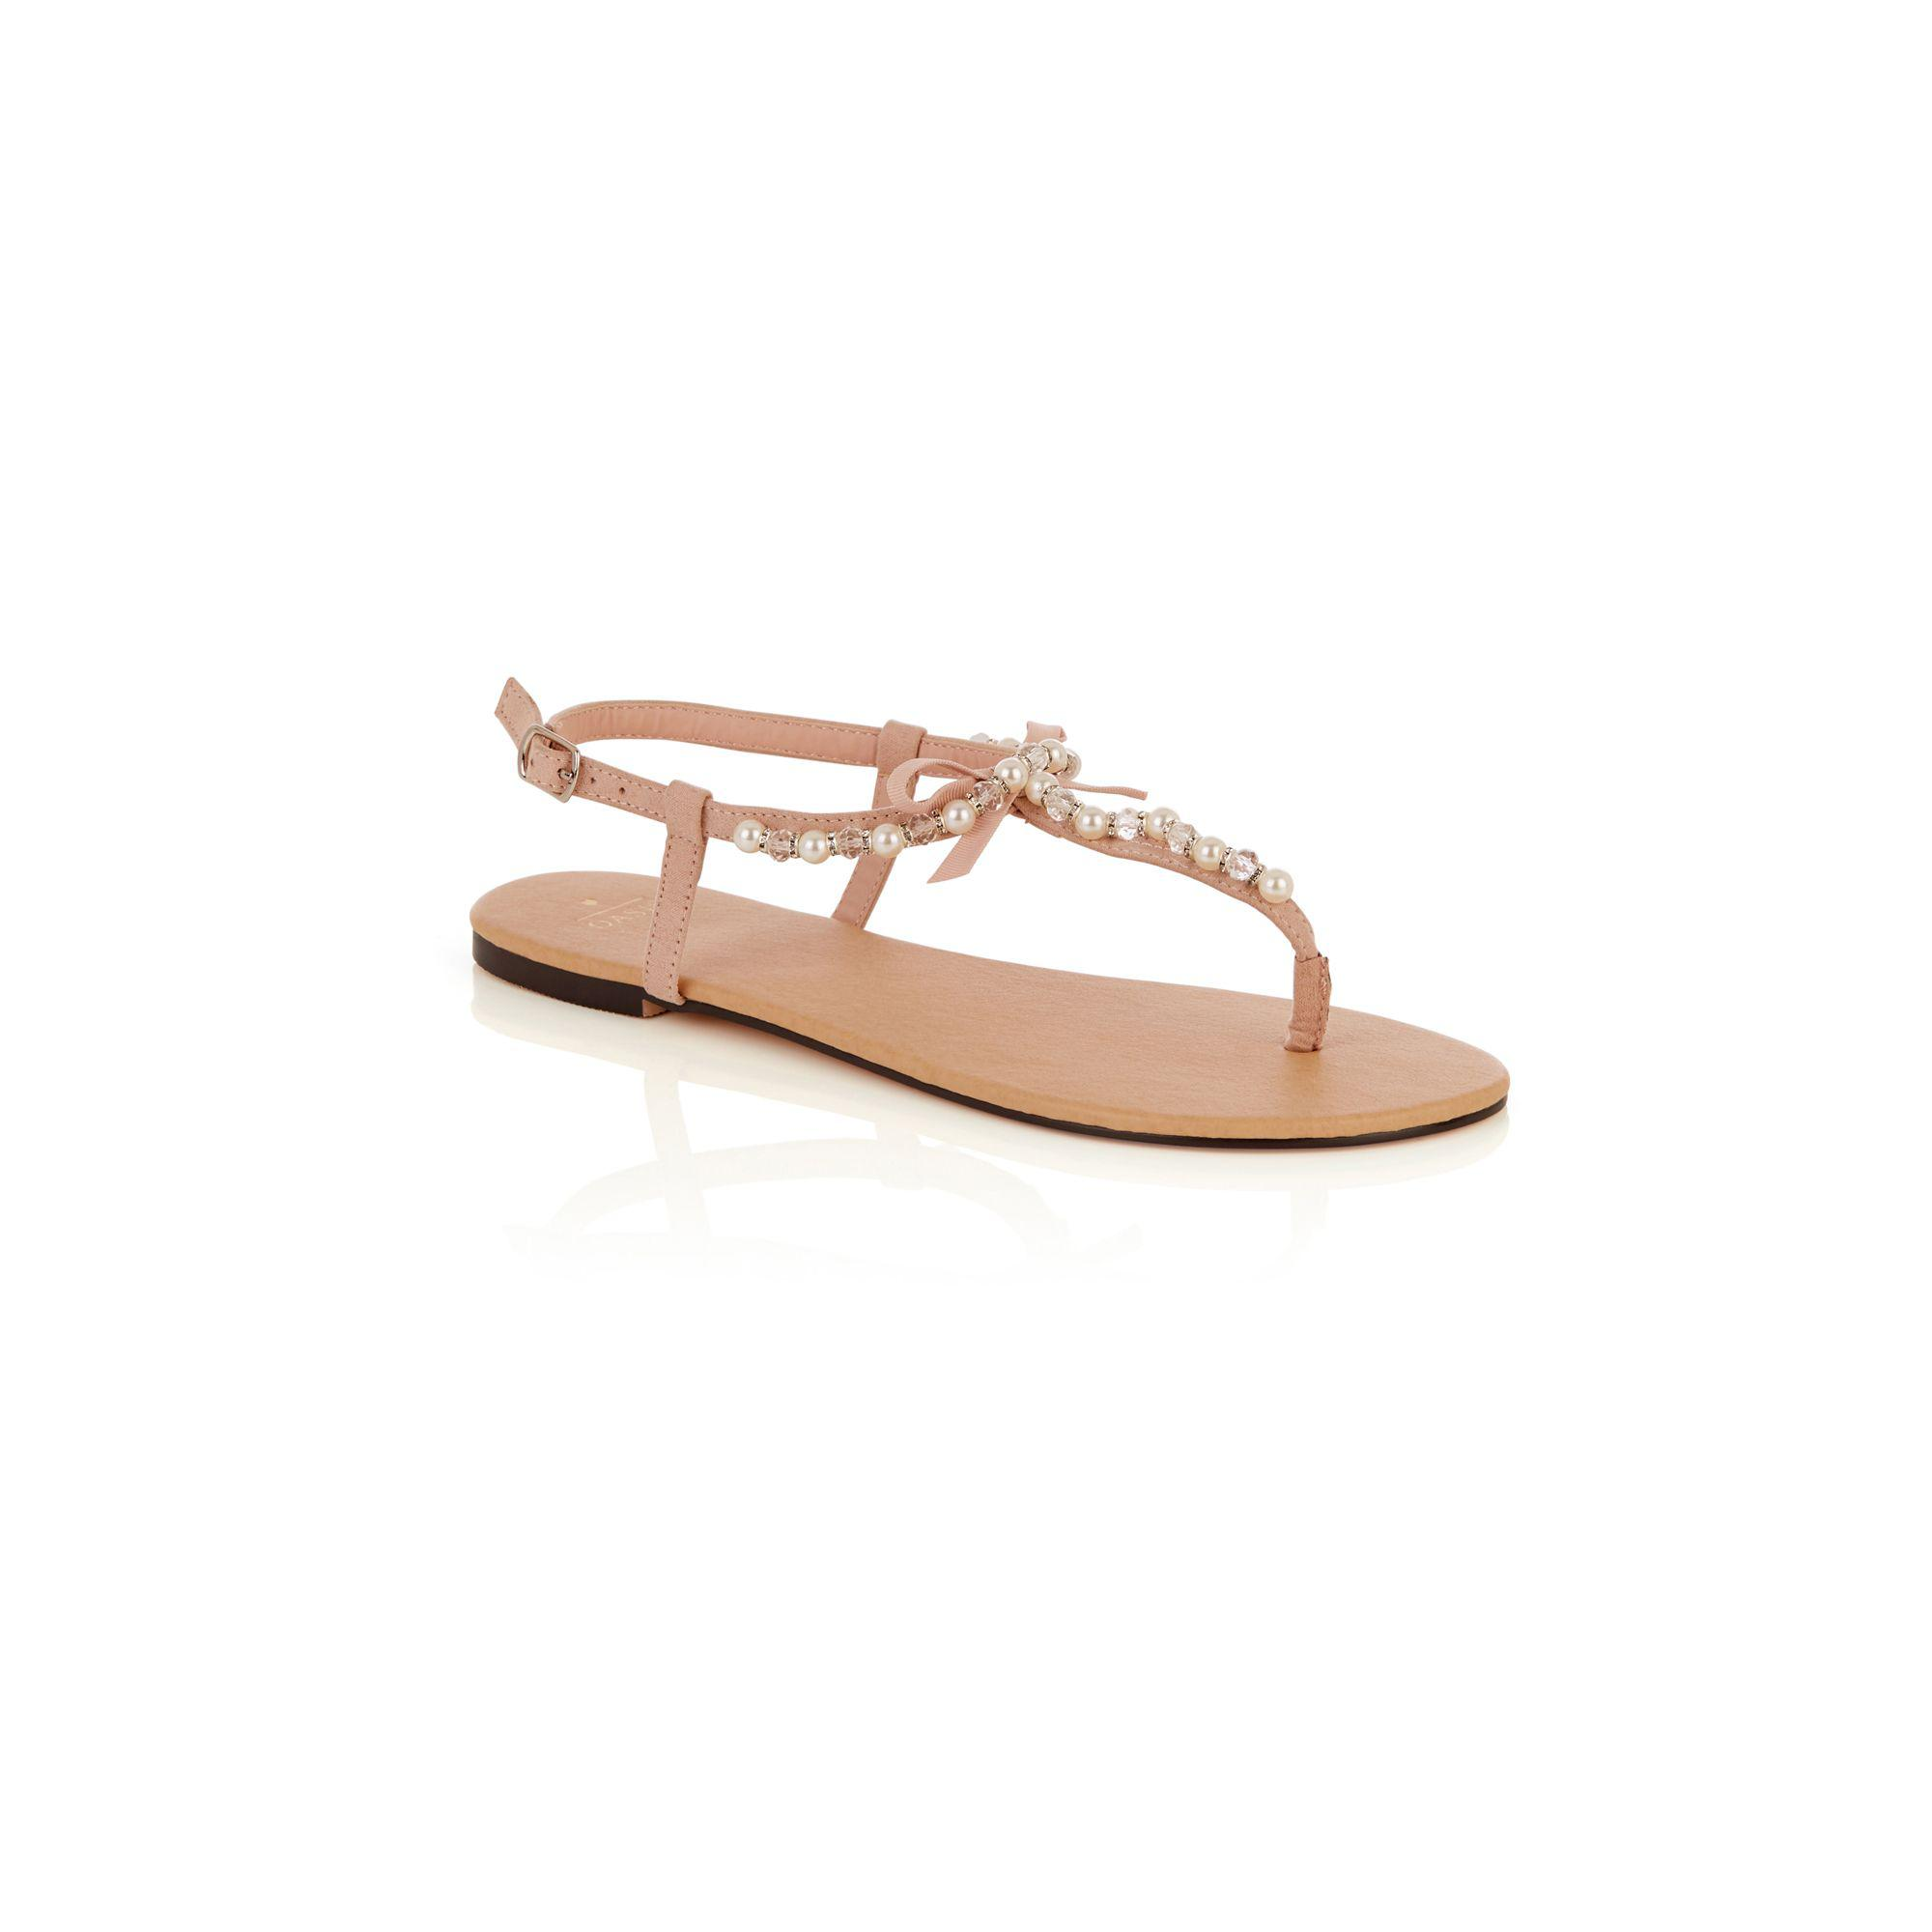 9c28b49683b9 Oasis Pale Pink Pearl Bow Toe Posts Sandals in Pink - Lyst